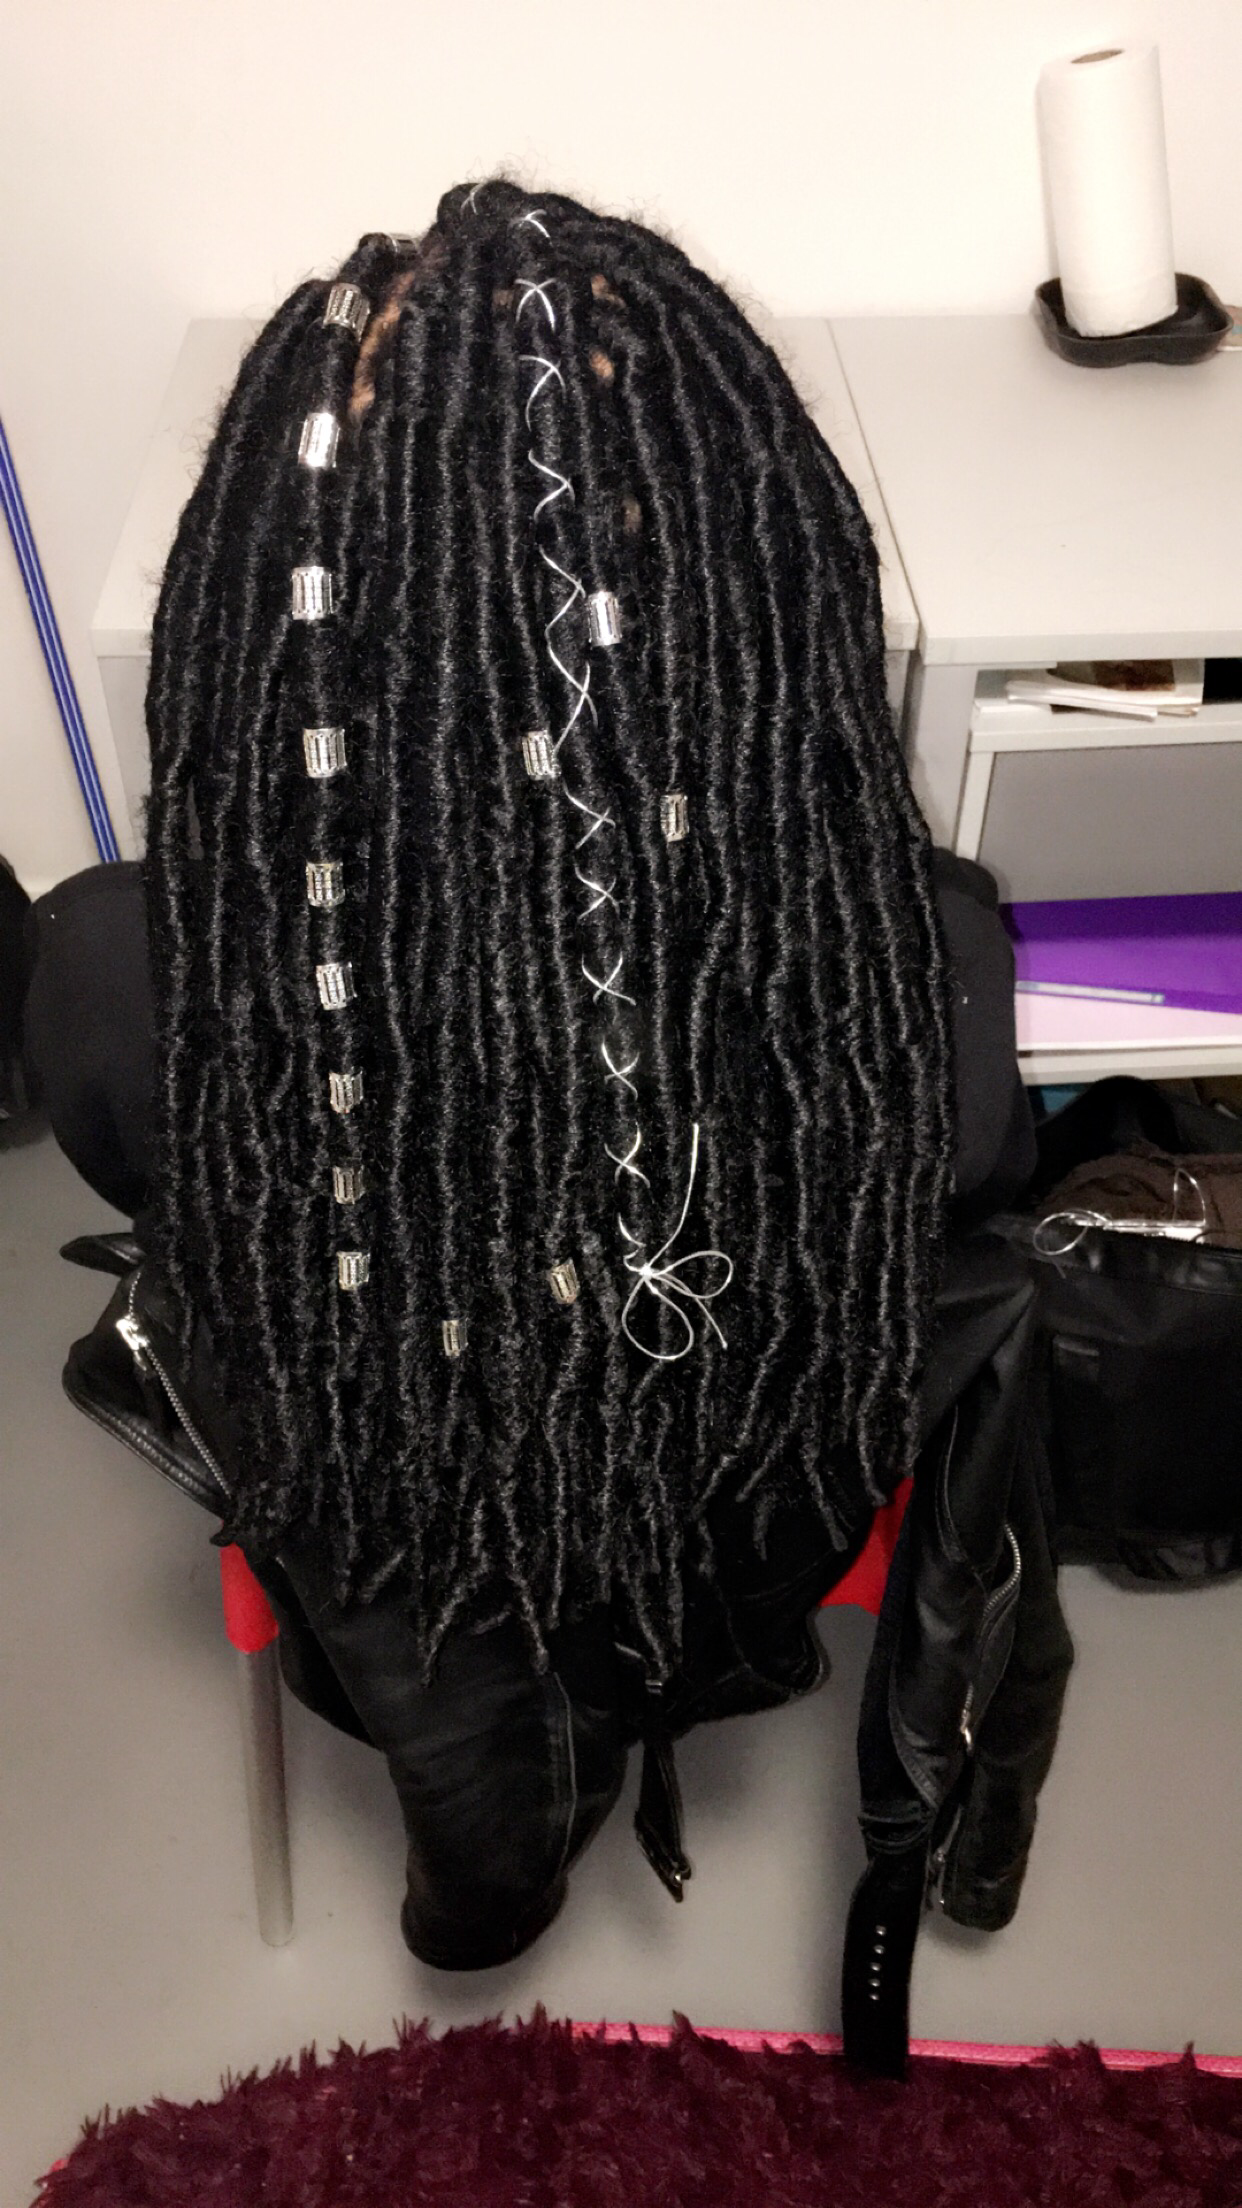 salon de coiffure afro tresse tresses box braids crochet braids vanilles tissages paris 75 77 78 91 92 93 94 95 RSRGEKHV